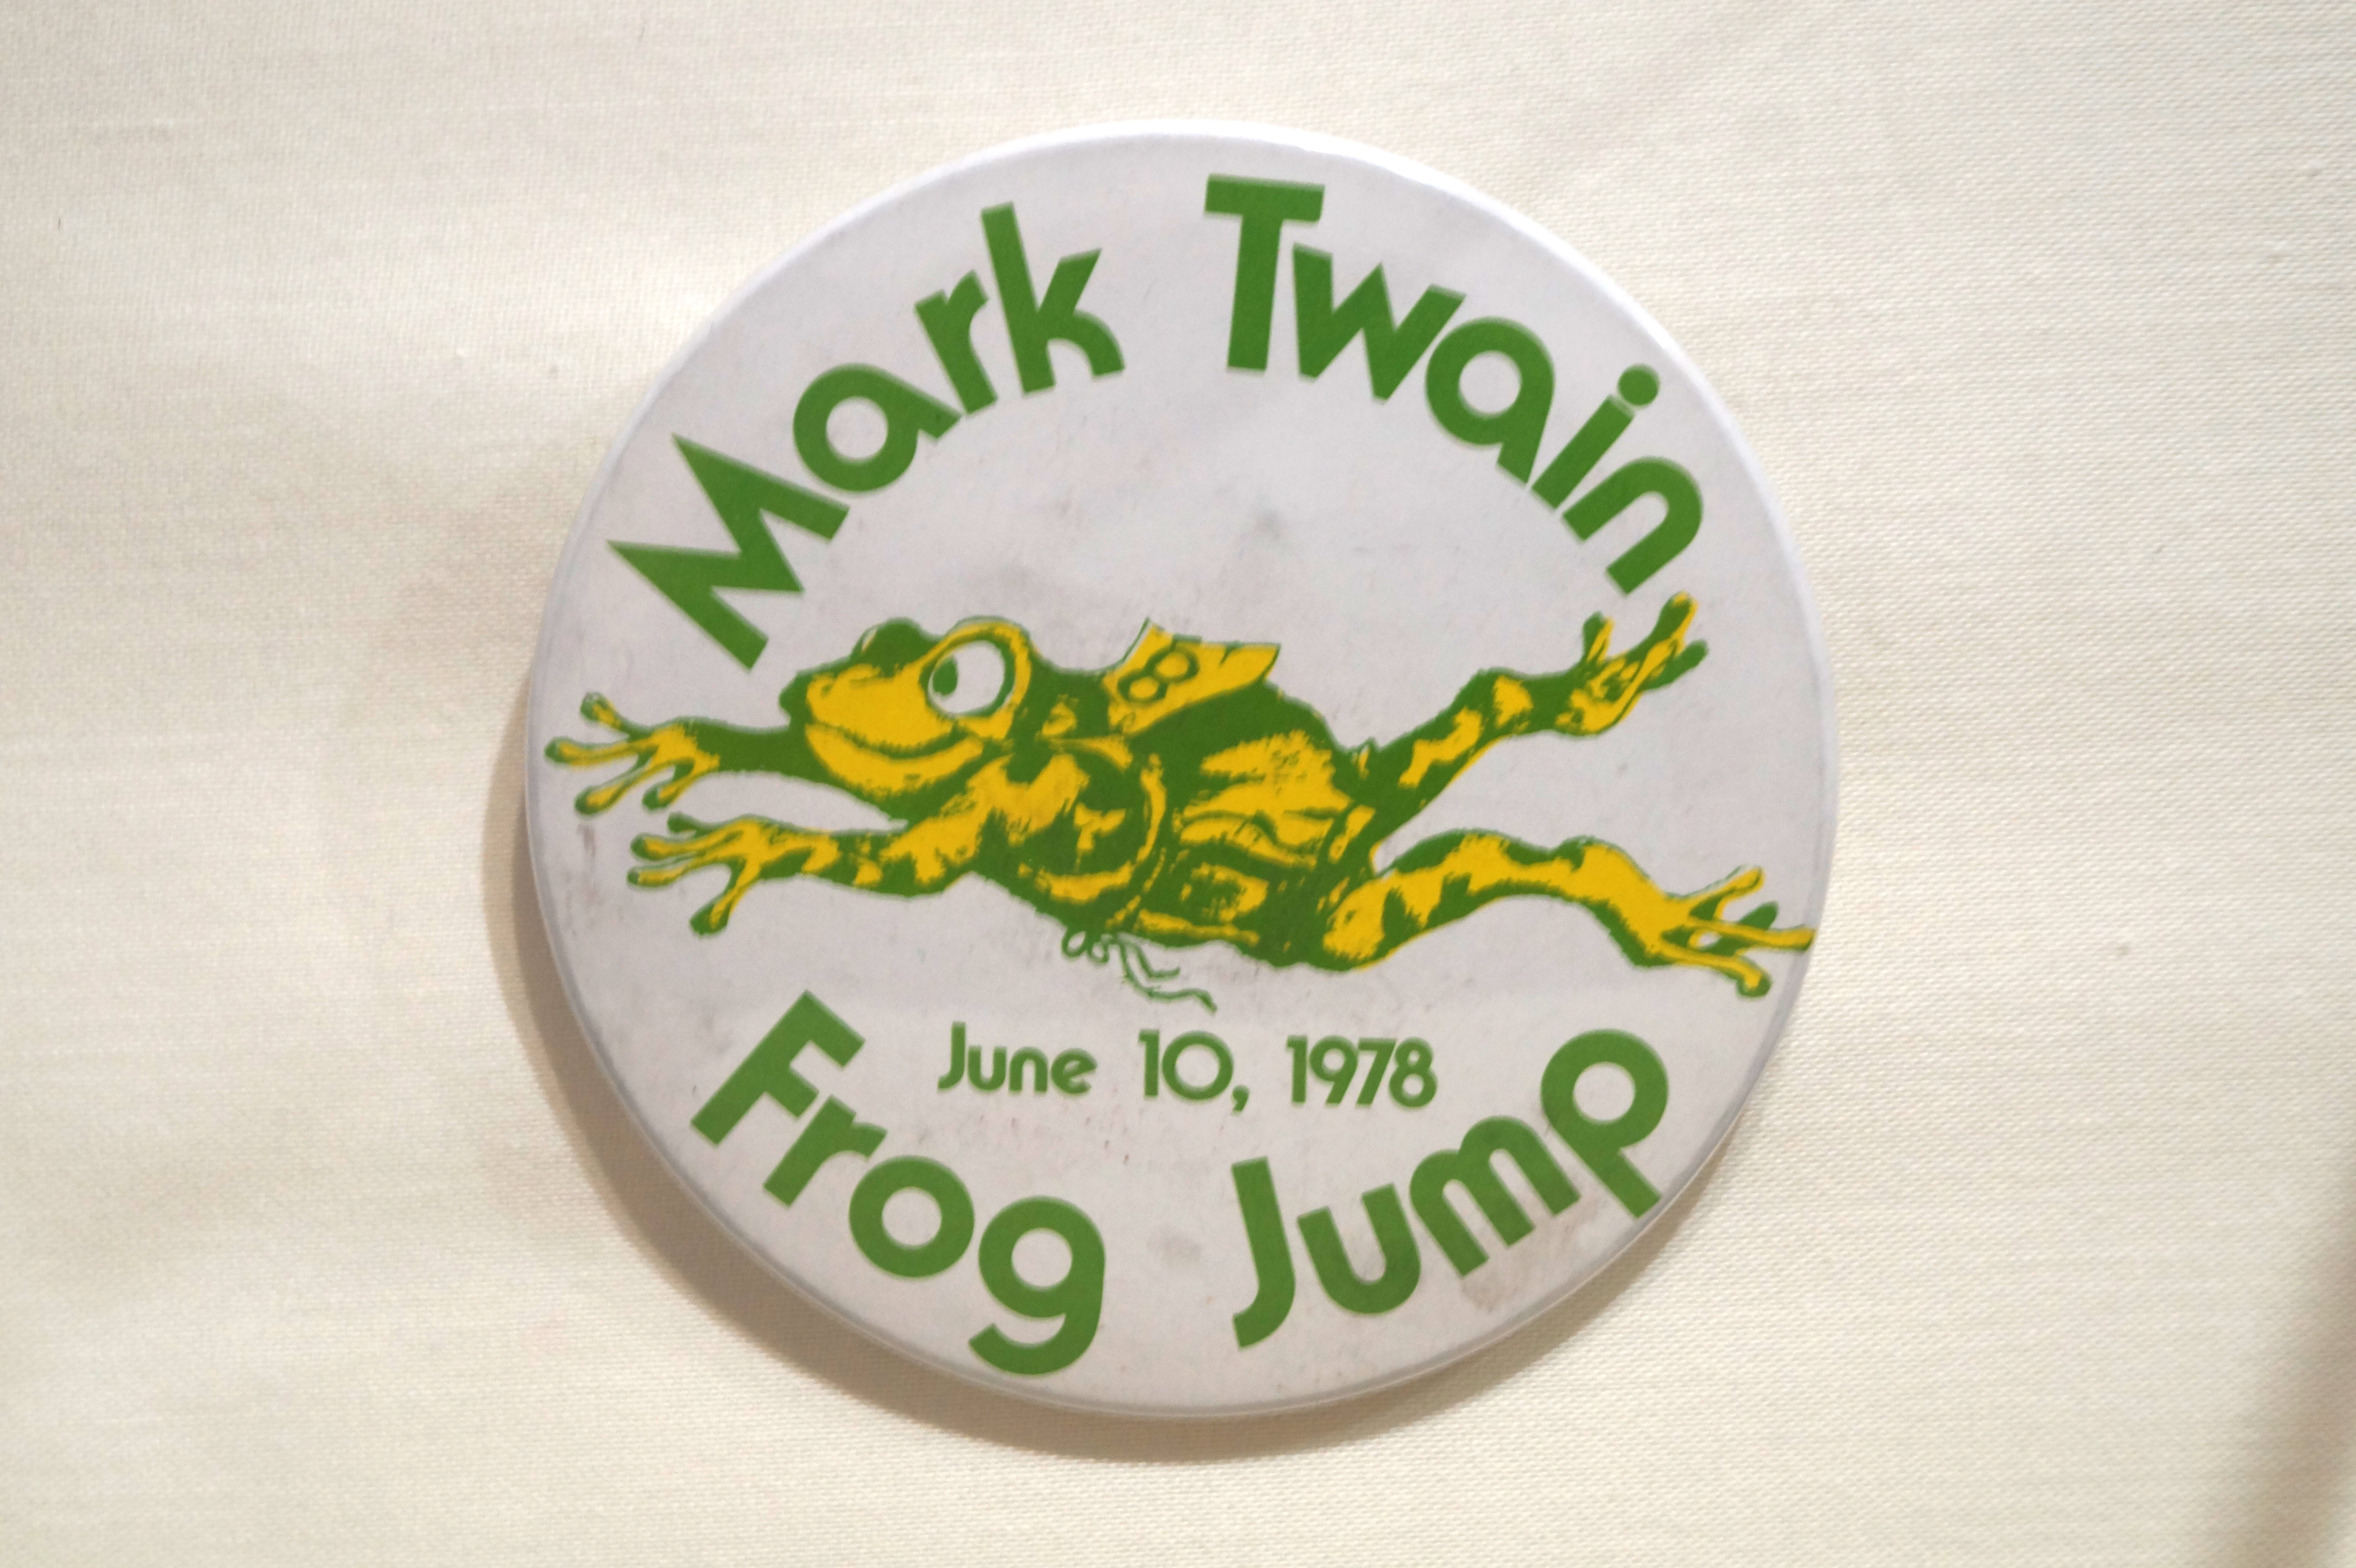 """The first press reference to a jumping frog contest in Hartford - commemorating """"The Celebrate Jumping Frog of Calaveras County,"""" Clemens's breakthrough work of 1865 - is from 1944 when a tourney was held in Colt Park.  Ten teams represented city boys' clubs and the Hartford Junior Police Legion of Honor.  In the 1950s the Mark Twain Memorial Commission and the Hartford Children's Museum organized an annual contest which was wildly popular.  The winner of the last run race probably wore a button like the one displayed.  In 1979 sentiment against the use of animals in sport led to the discontinuation of the event."""